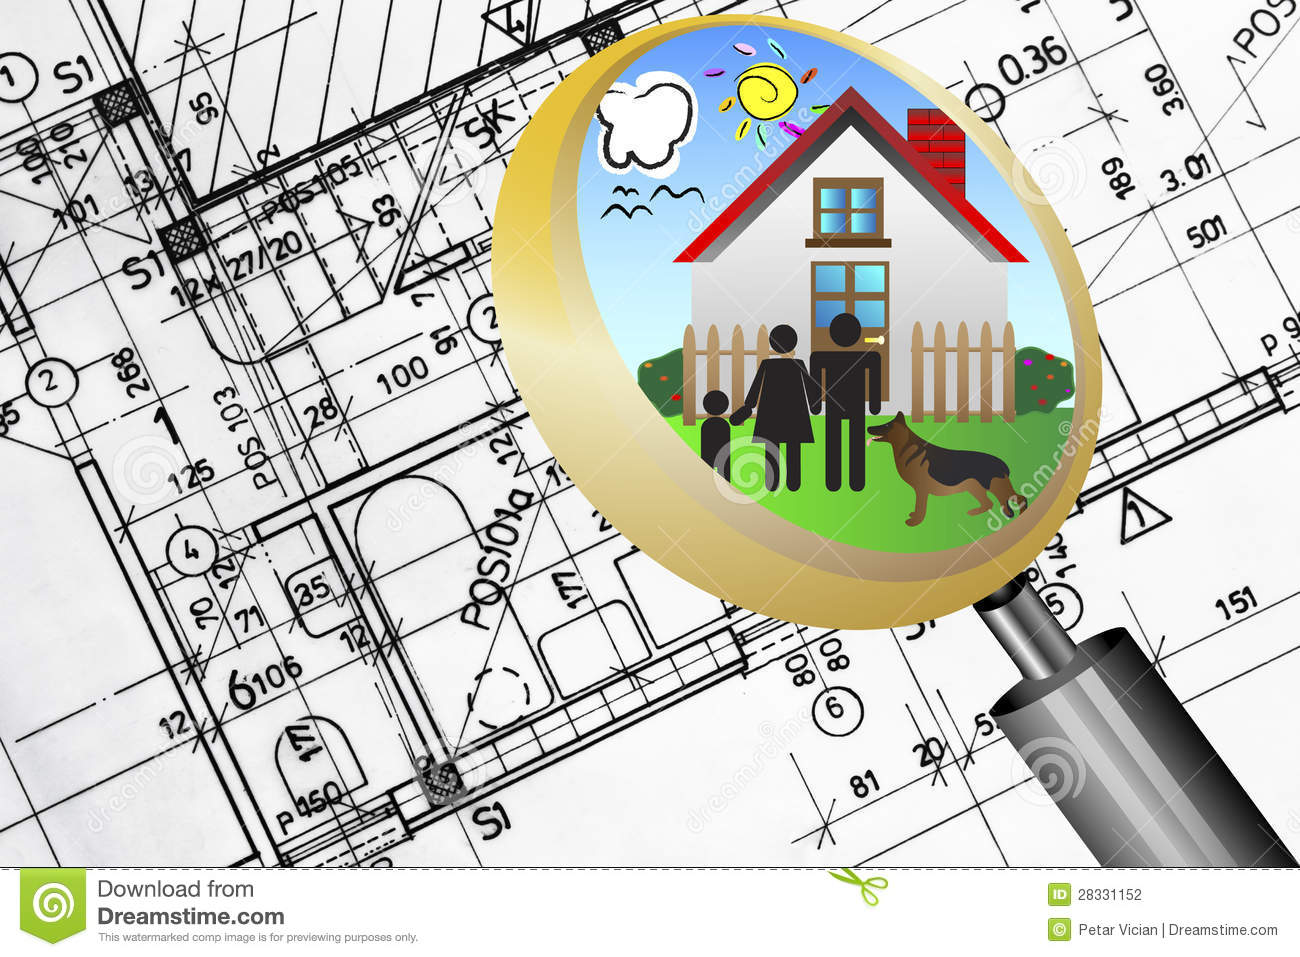 Architectural plan blueprint real estate business concept with architectural plan blueprint real estate business concept with magnifying glass lens happy family stock illustration illustration of choice malvernweather